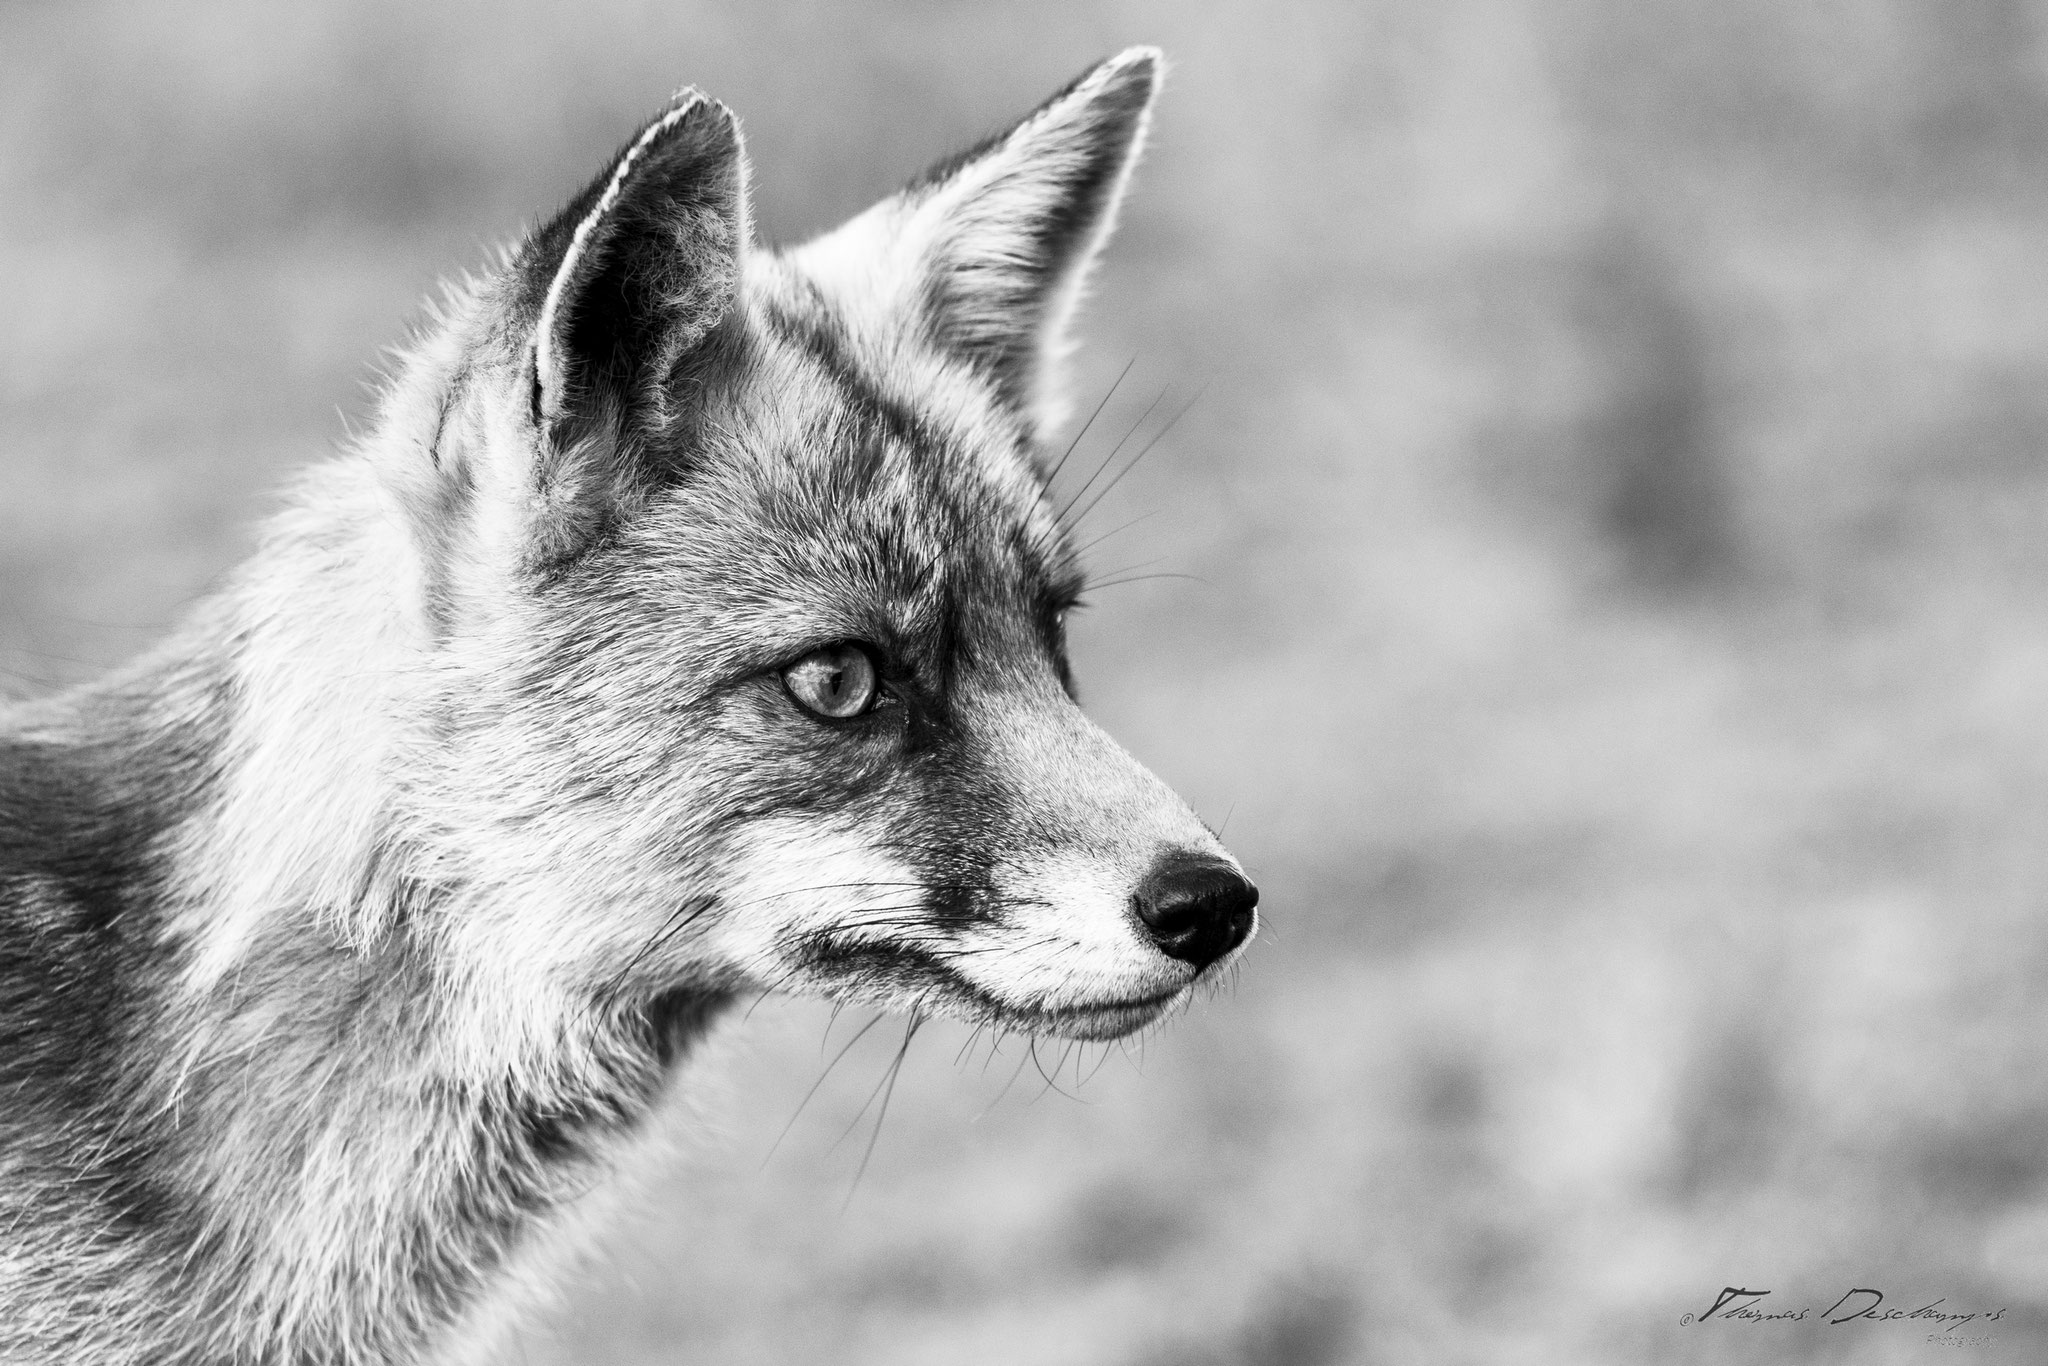 Thomas Deschamps Photography Renard Pays Bas photo Red fox Netherlands picture wildlife